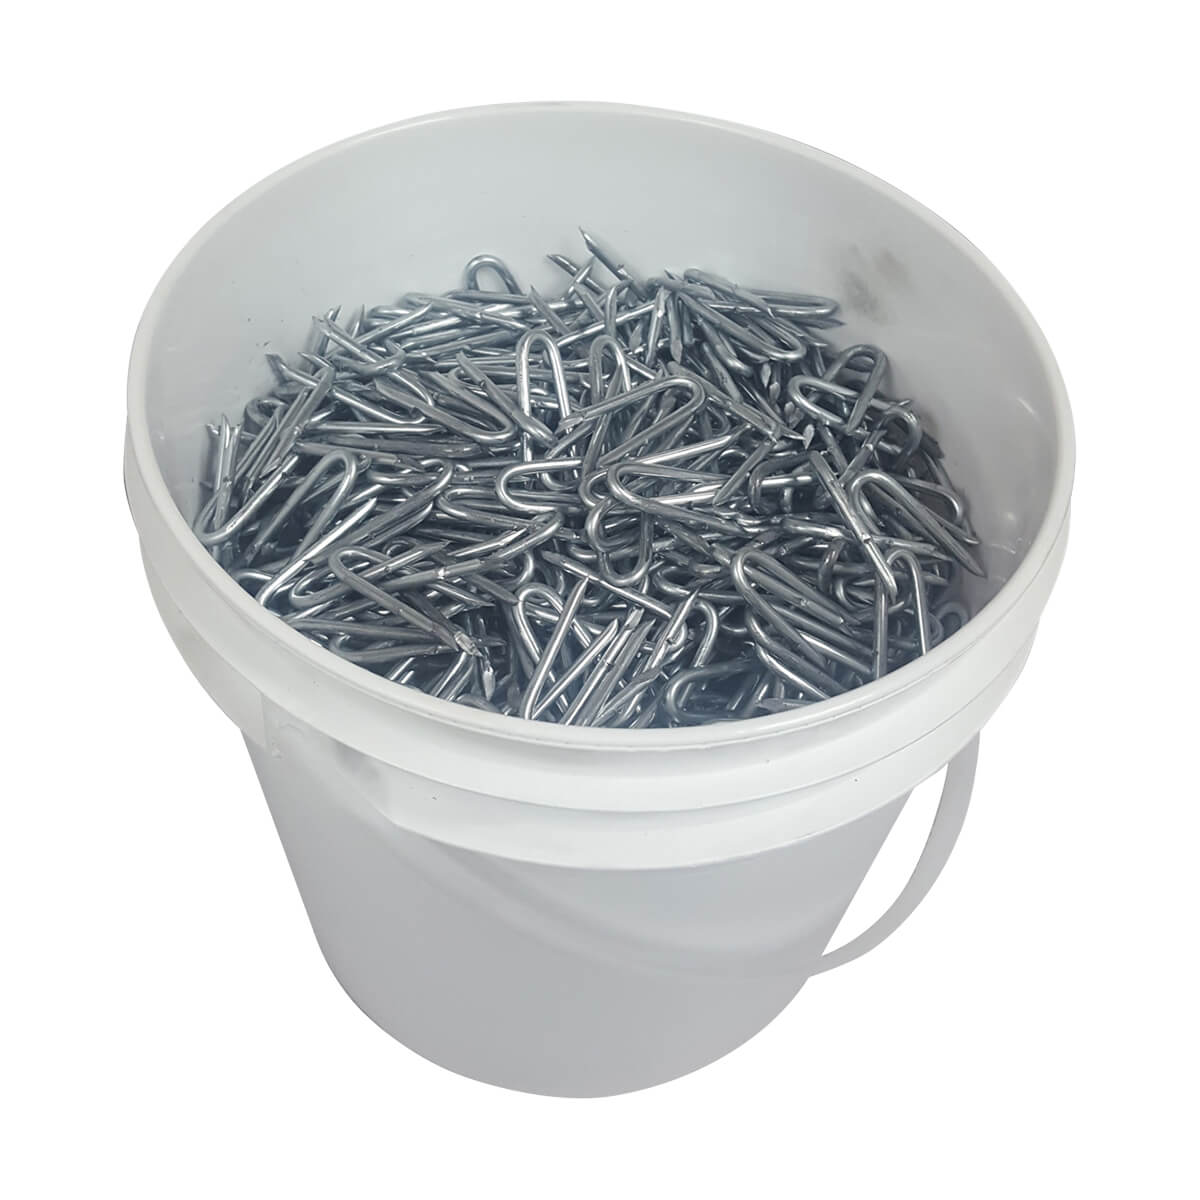 "Barbed Fence Staples - 1-3/4"" • 10 lb. pail"